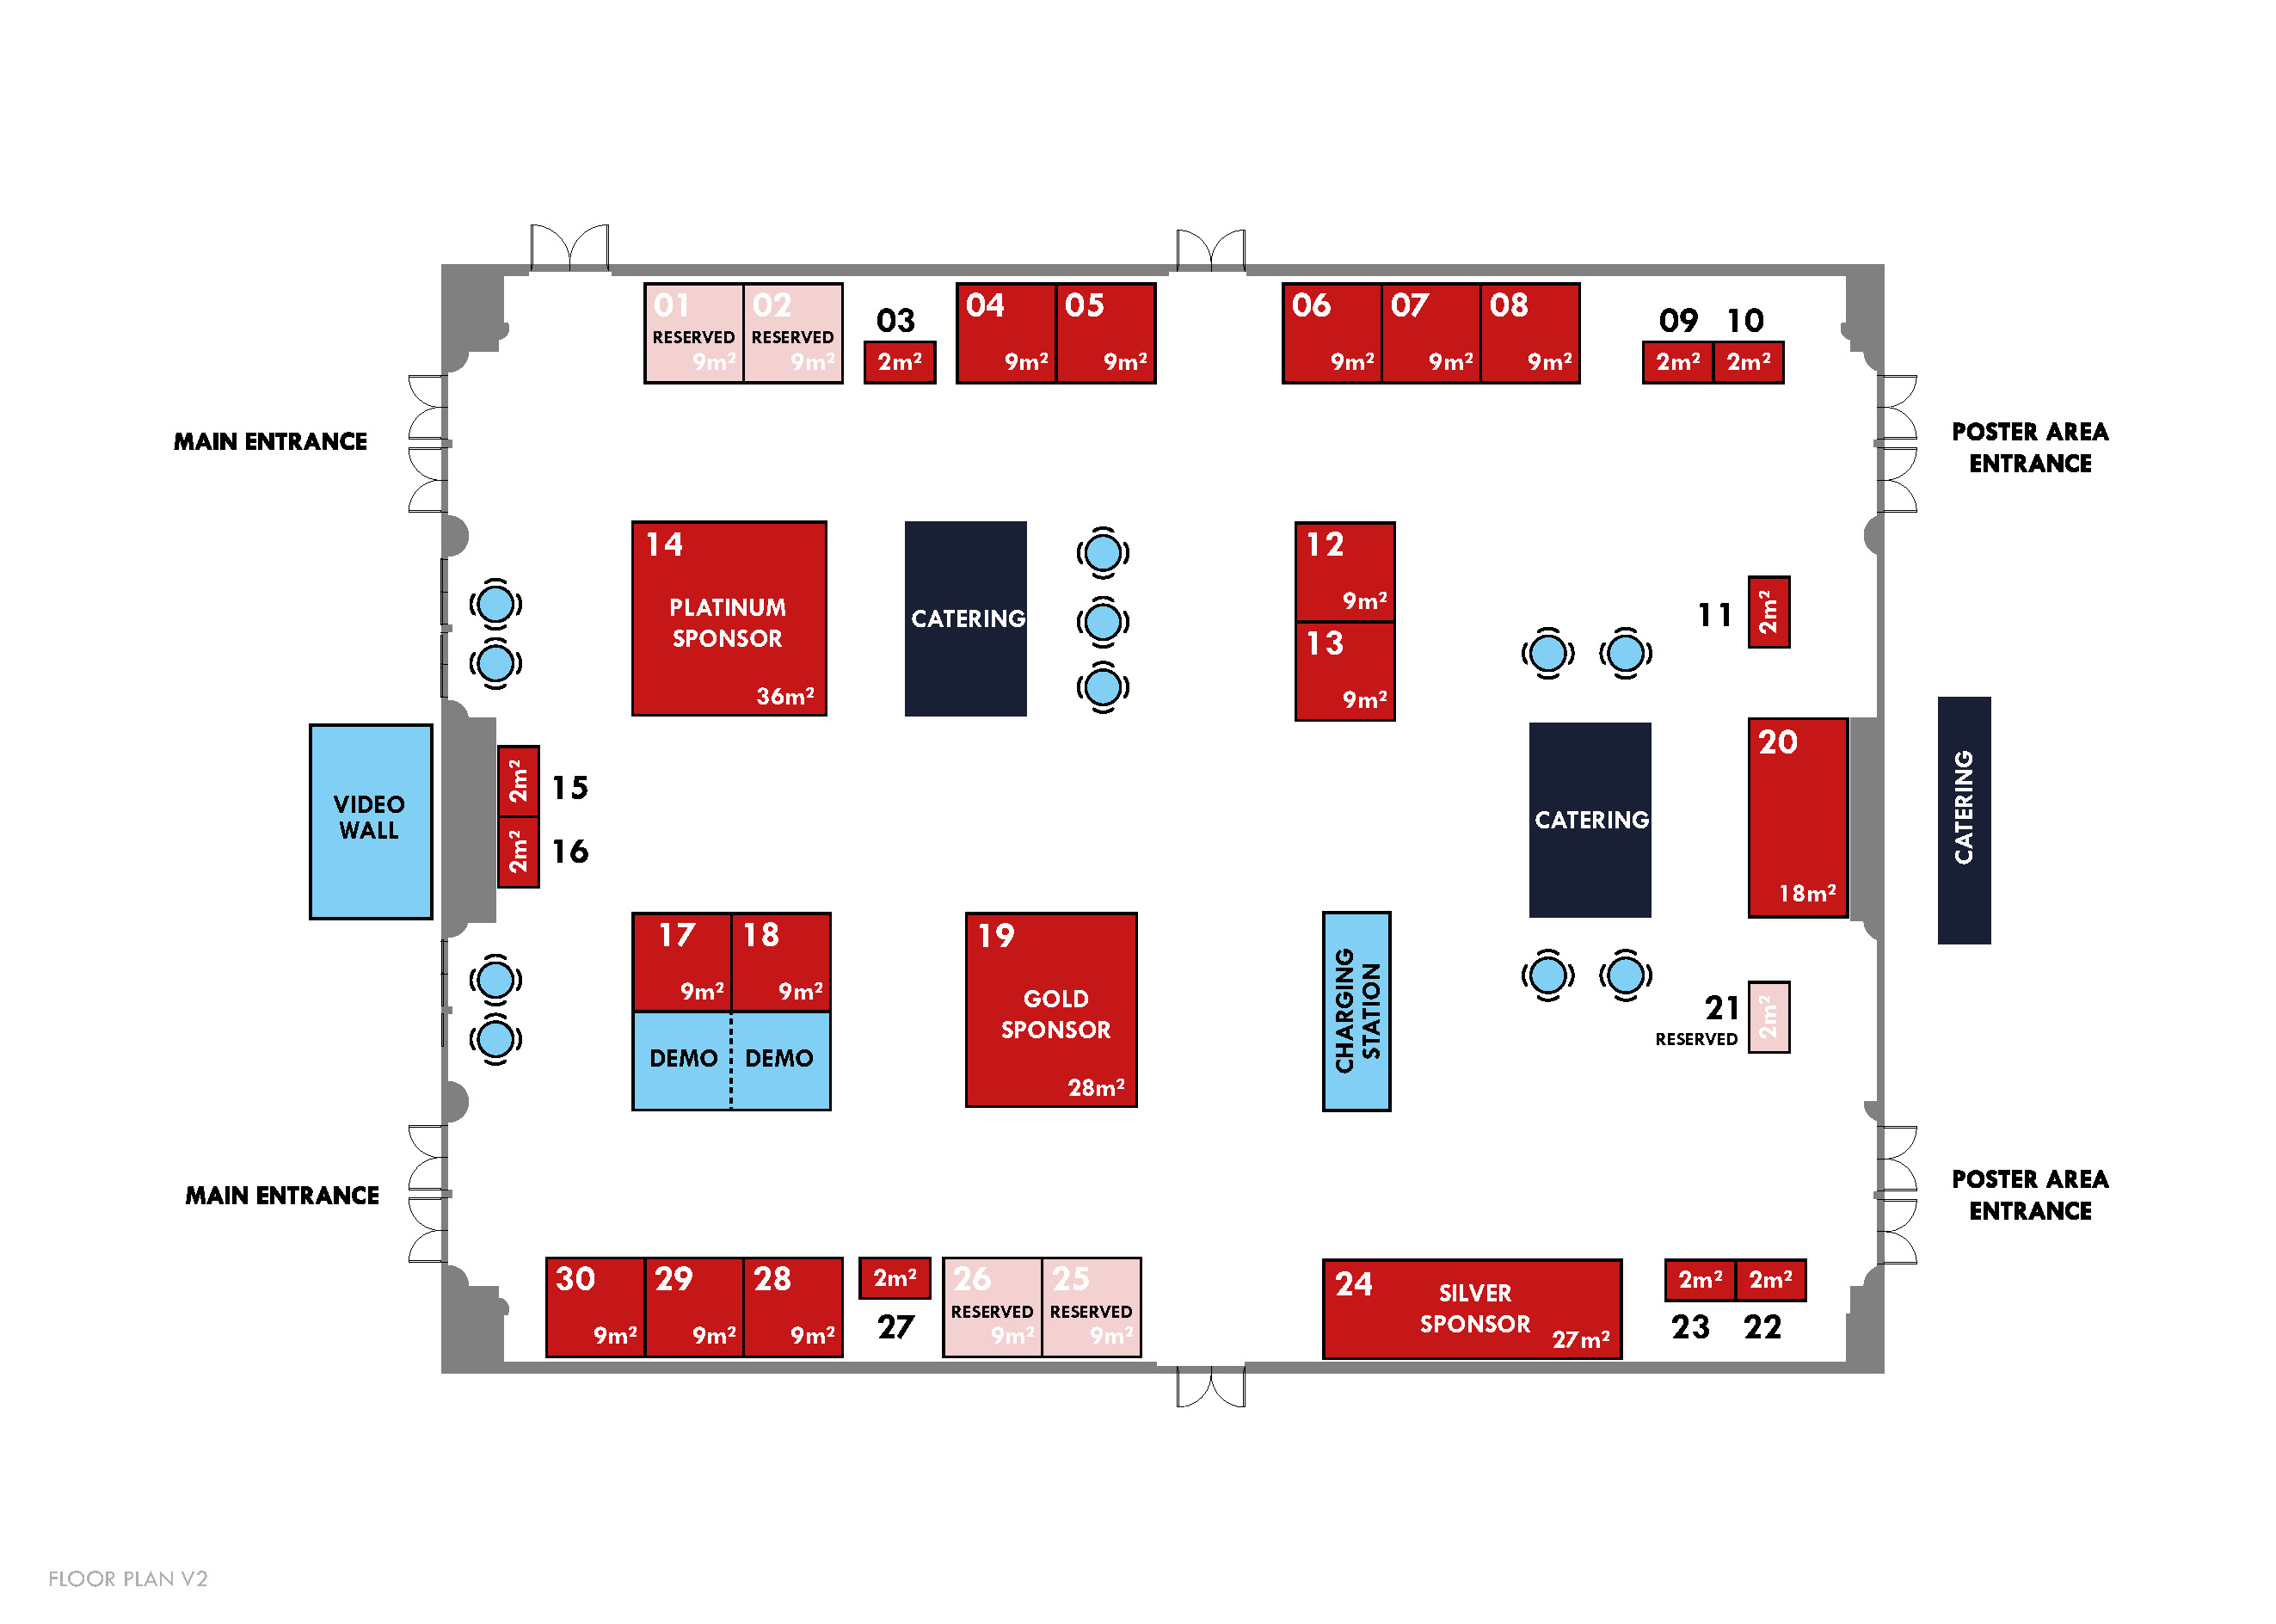 ISCOS2020 Floor Plan V2